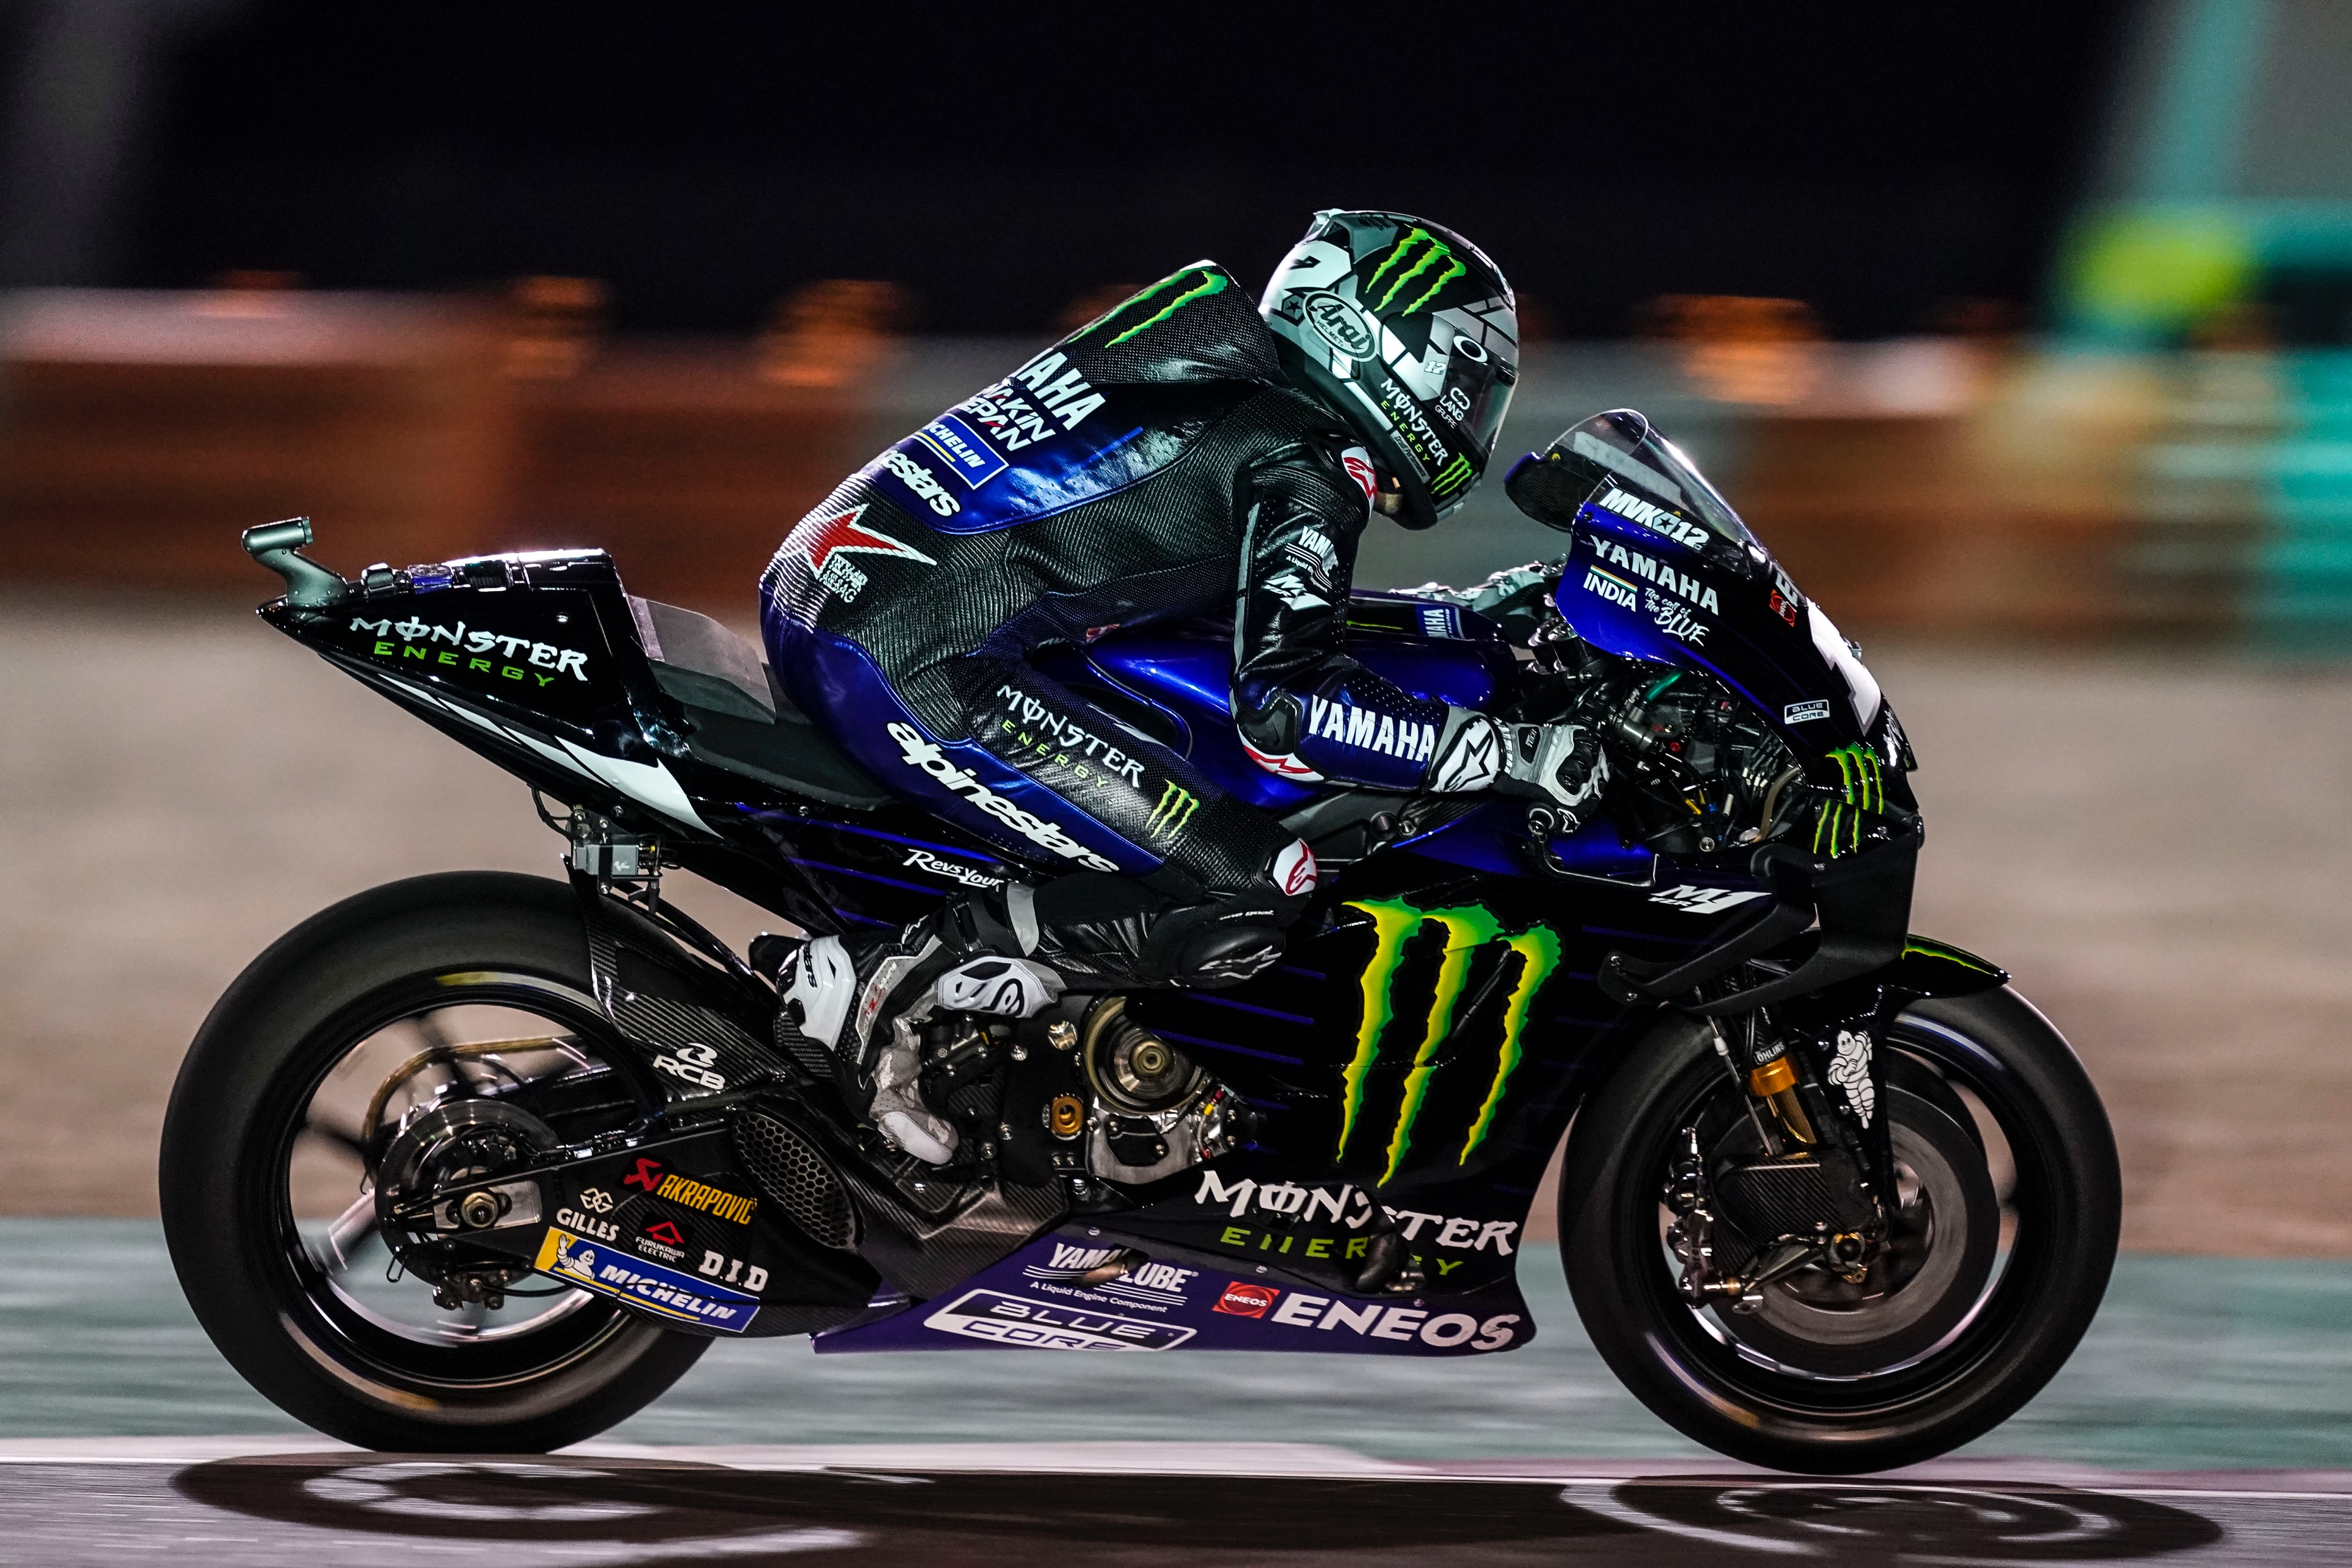 Monster Energy Yamaha MotoGP Commence 2019 Campaign in Qatar • Total Motorcycle